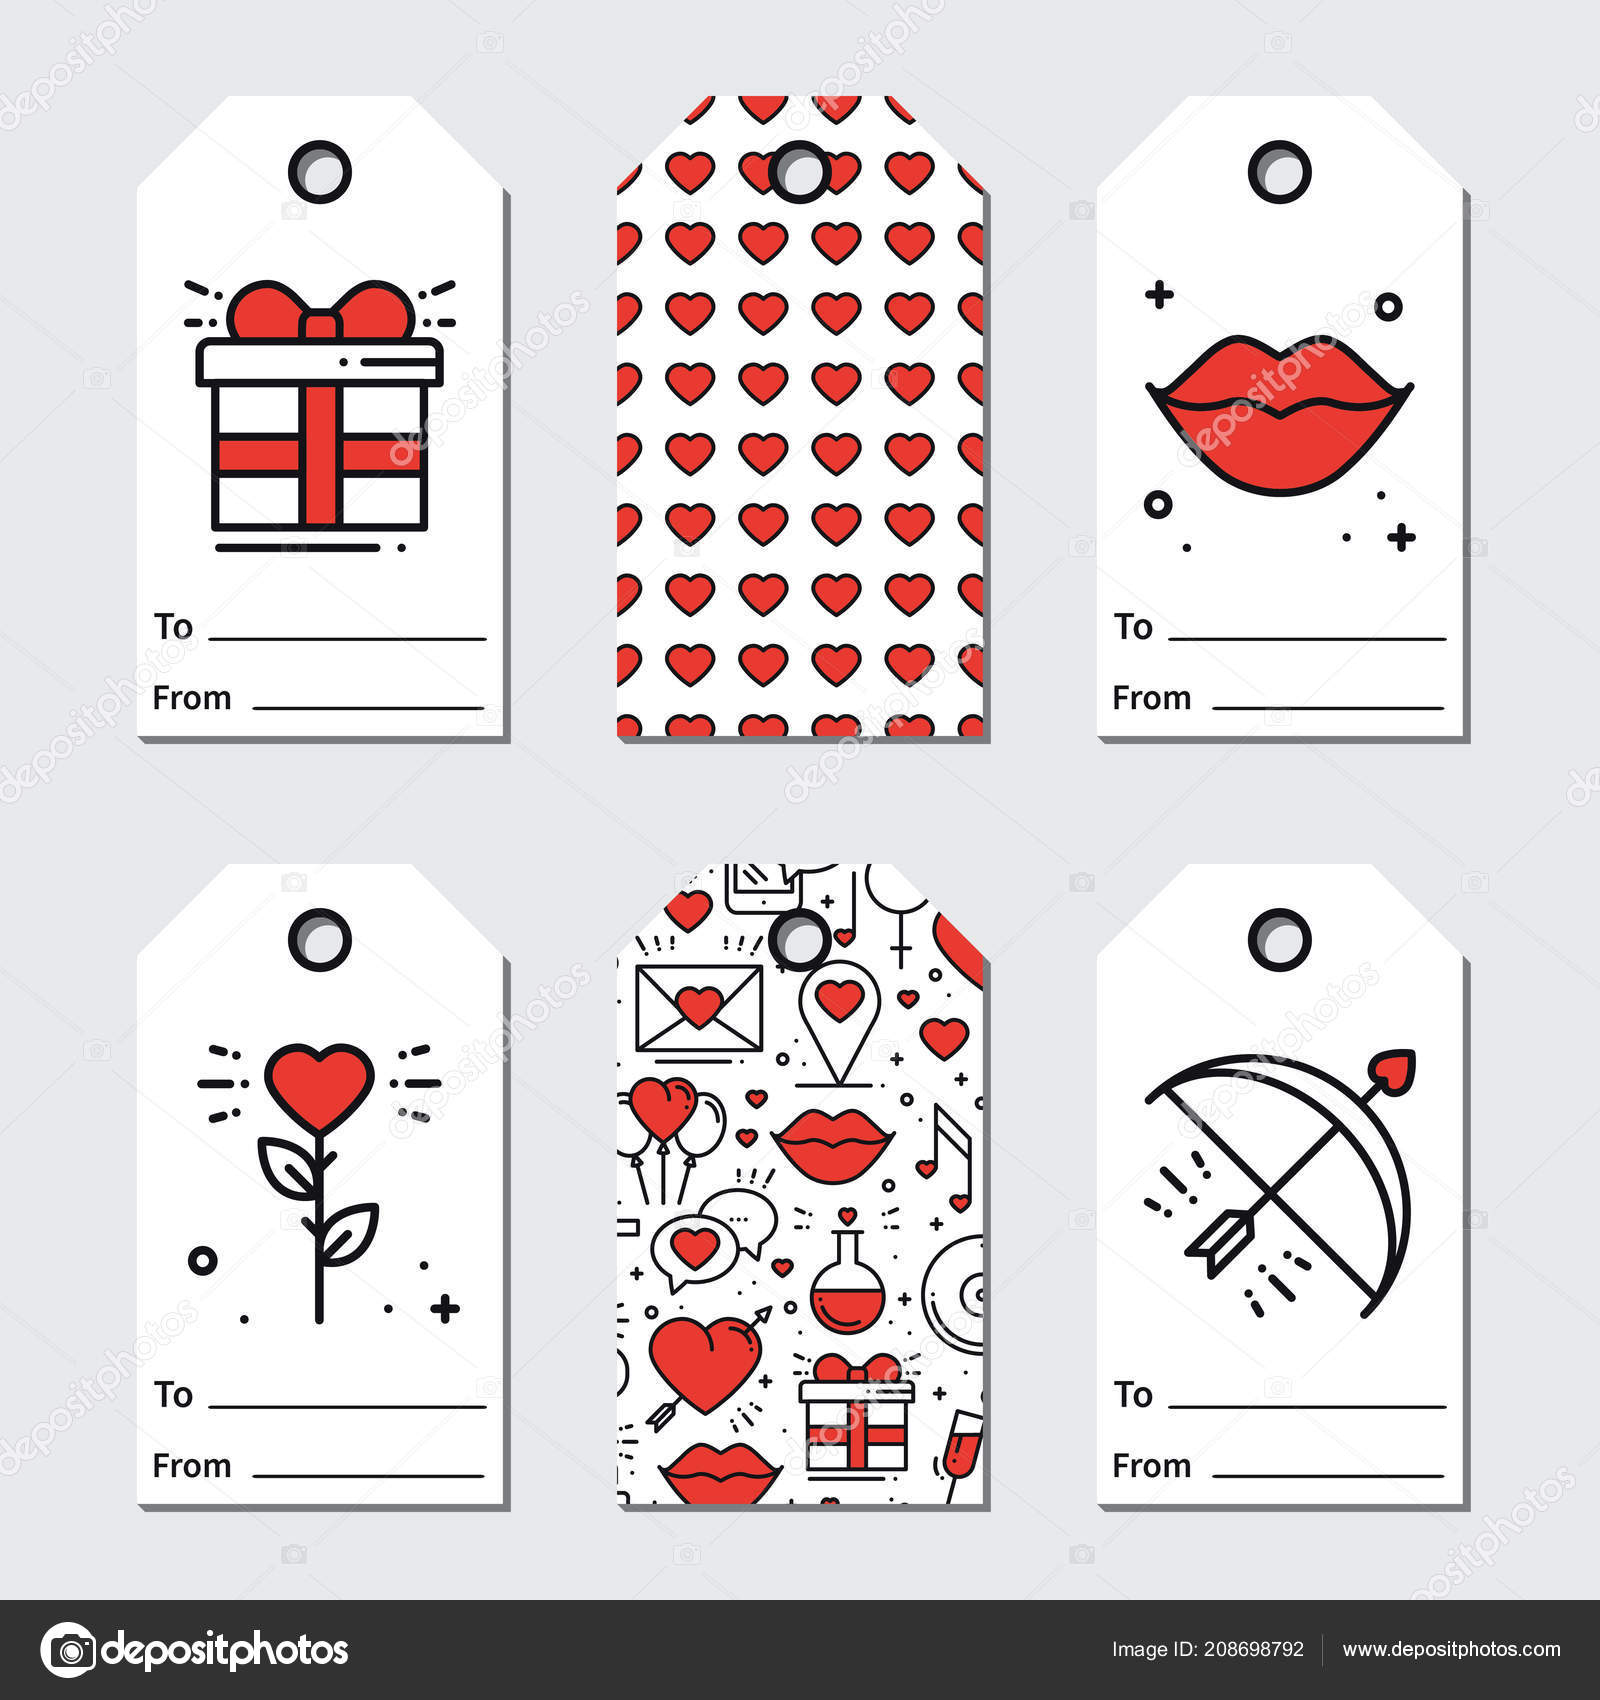 image relating to Valentines Gift Tags Printable known as St Valentines working day present tags. Printable tags assortment. Enjoy